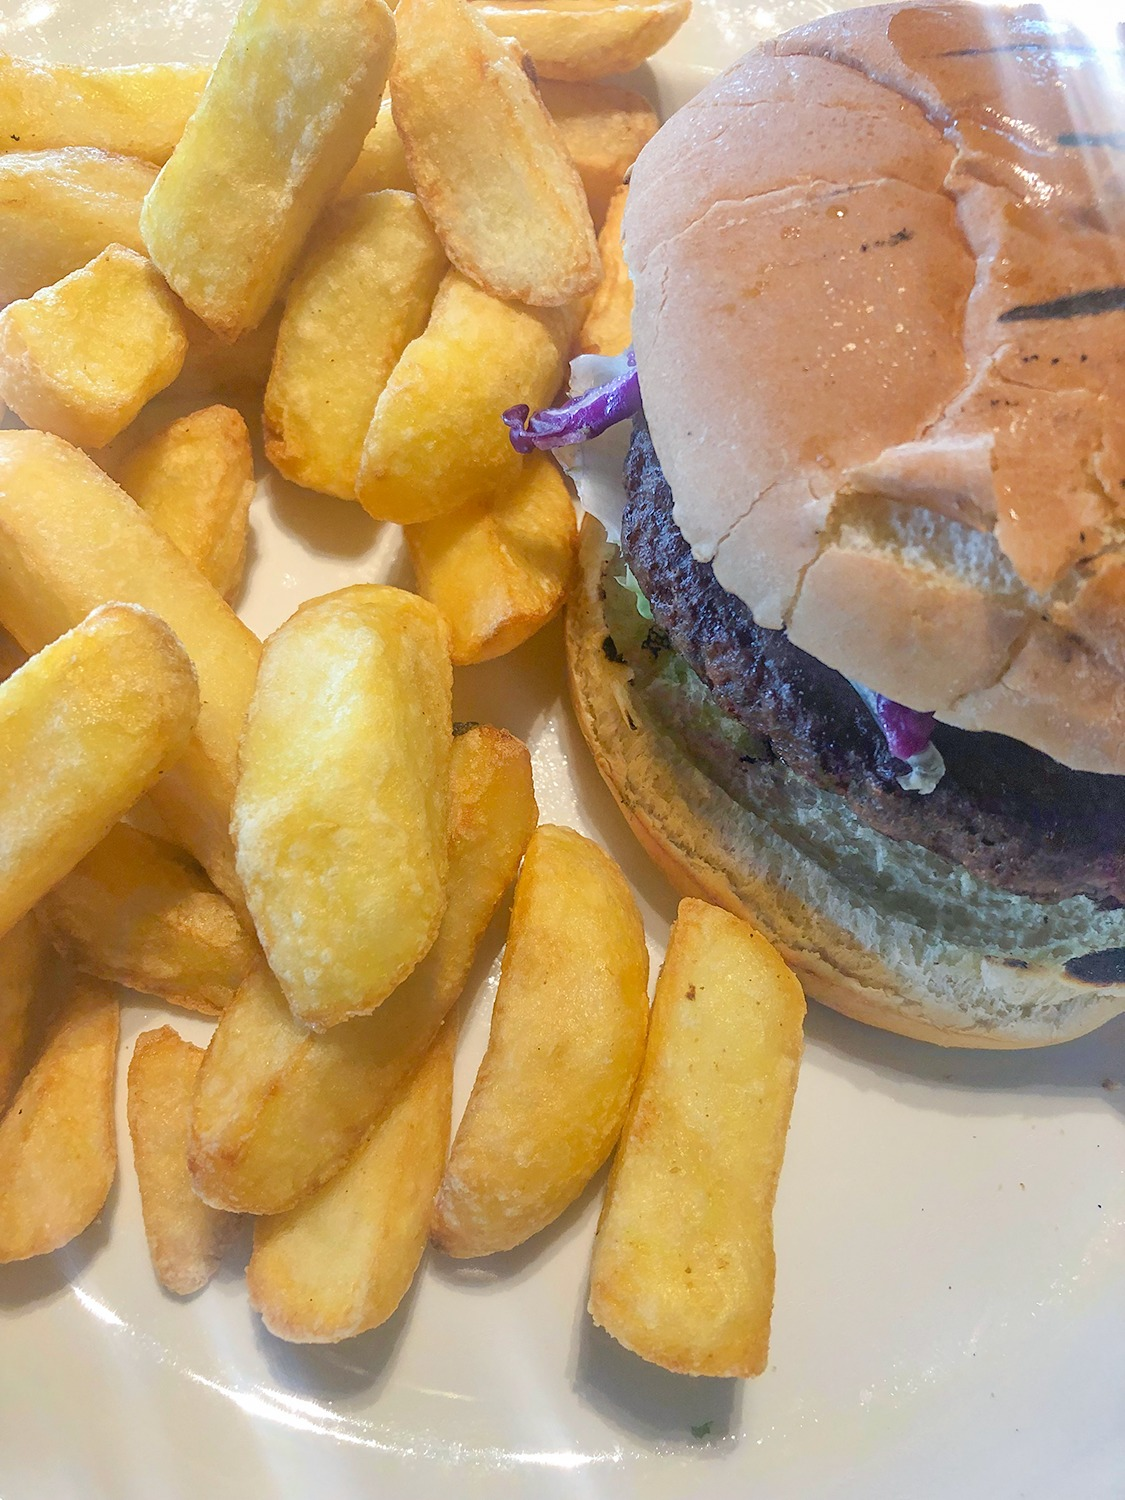 vegan burger crooked spoon restaurant alton towers